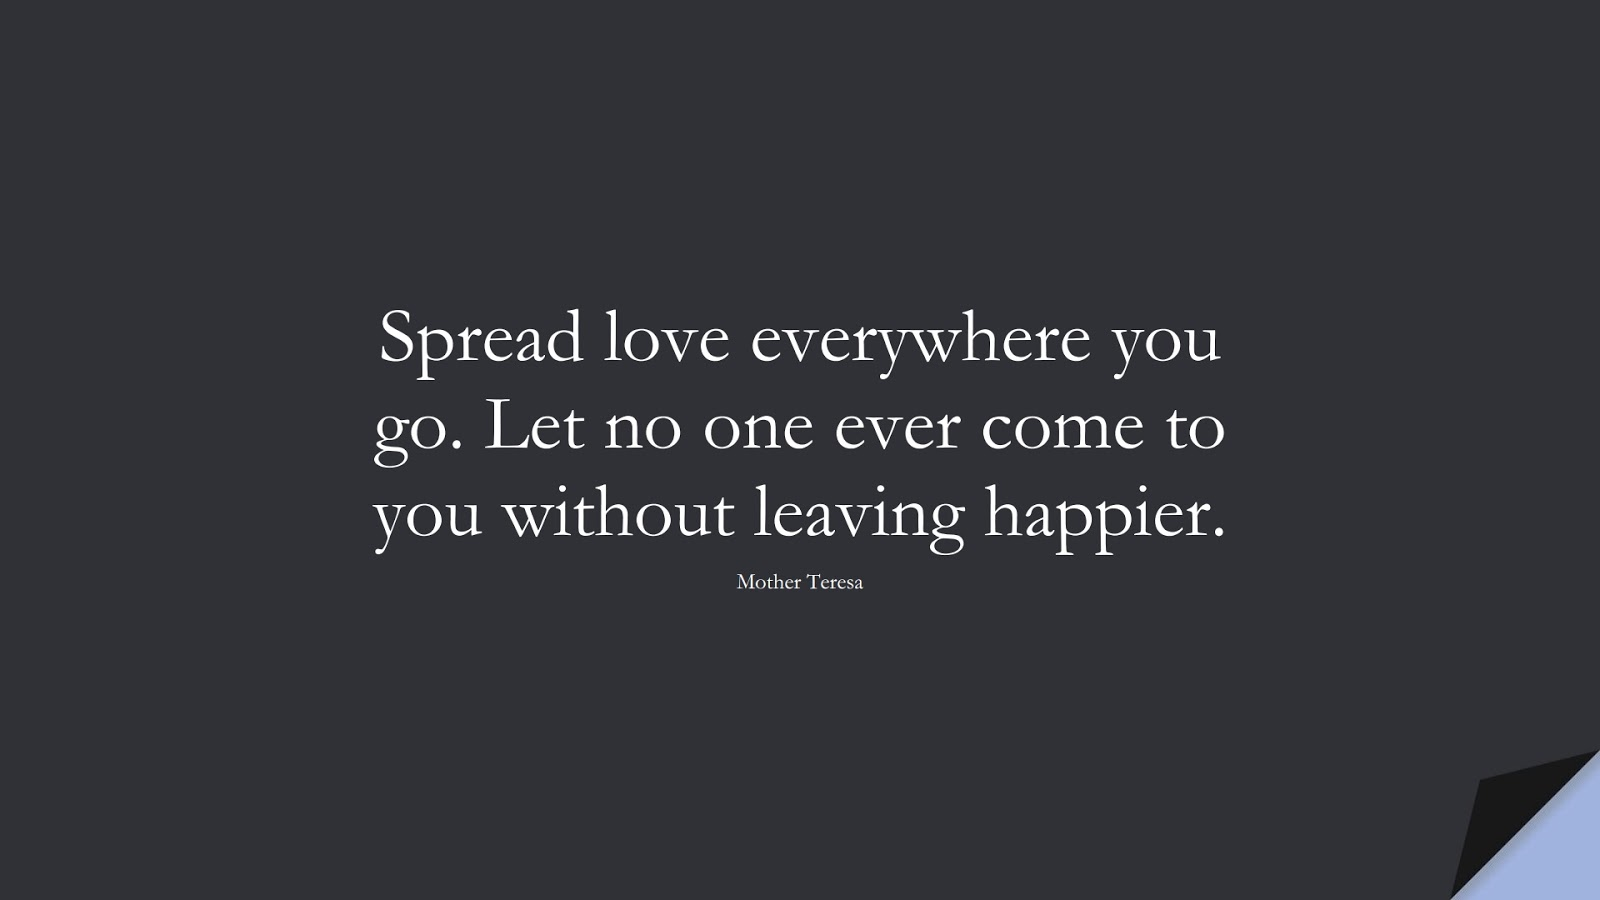 Spread love everywhere you go. Let no one ever come to you without leaving happier. (Mother Teresa);  #ShortQuotes